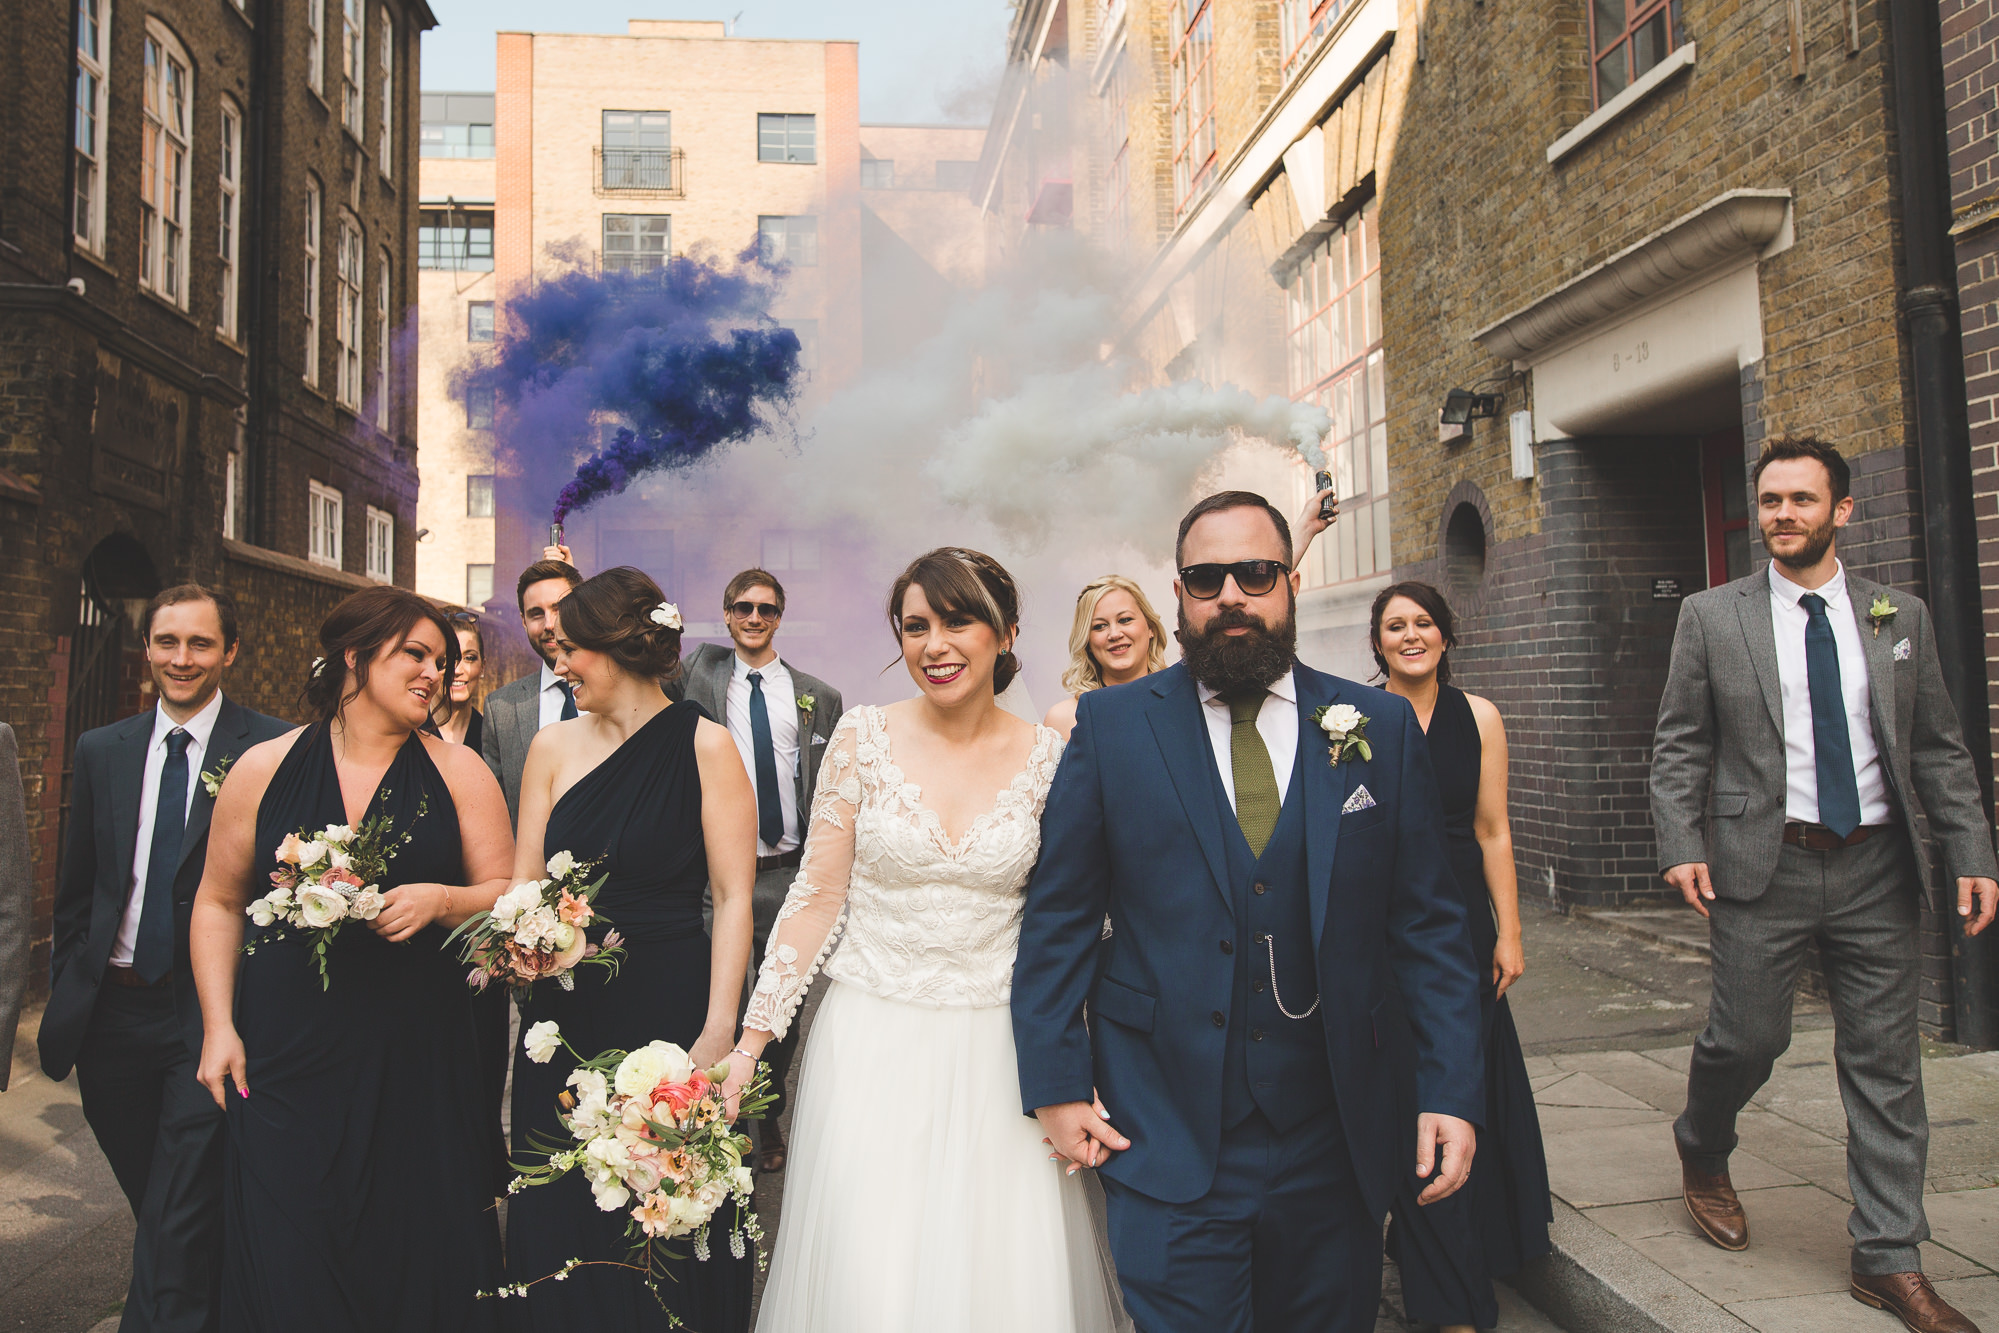 Colourful fun smoke bomb of wedding party by Ace Hotel in Shoreditch, London.